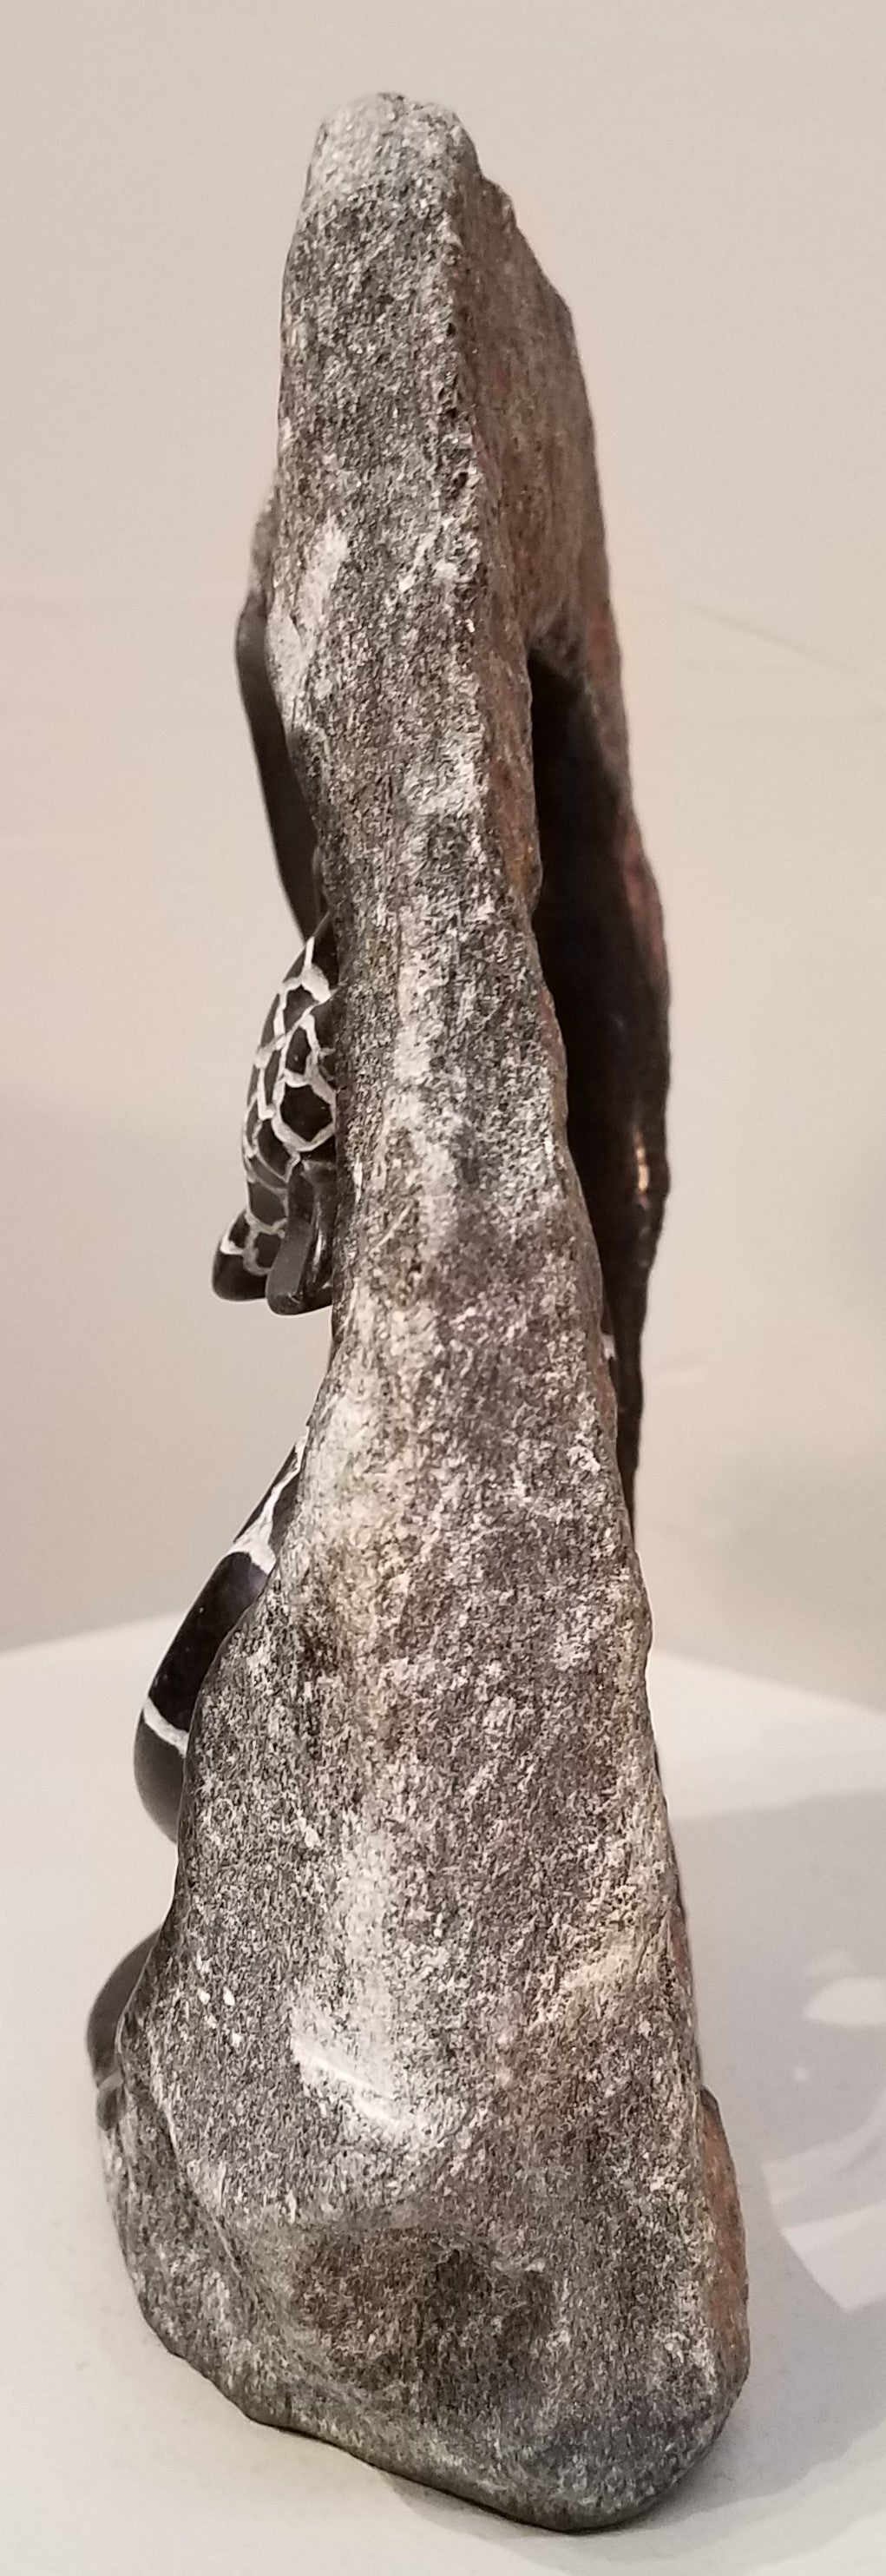 Abstract sculpture of kissing giraffes, within a circle of the untouched, and unpolished stone.  It was sculpted by hand from a single piece of serpentine stone, in Zimbabwe. The inner part of the circle, and giraffes, are completely polished, bringing out the dark brownish color of the stone. The pattern of the giraffes is etched out of the polished stone, leaving a contrasting greyish/whitish pattern